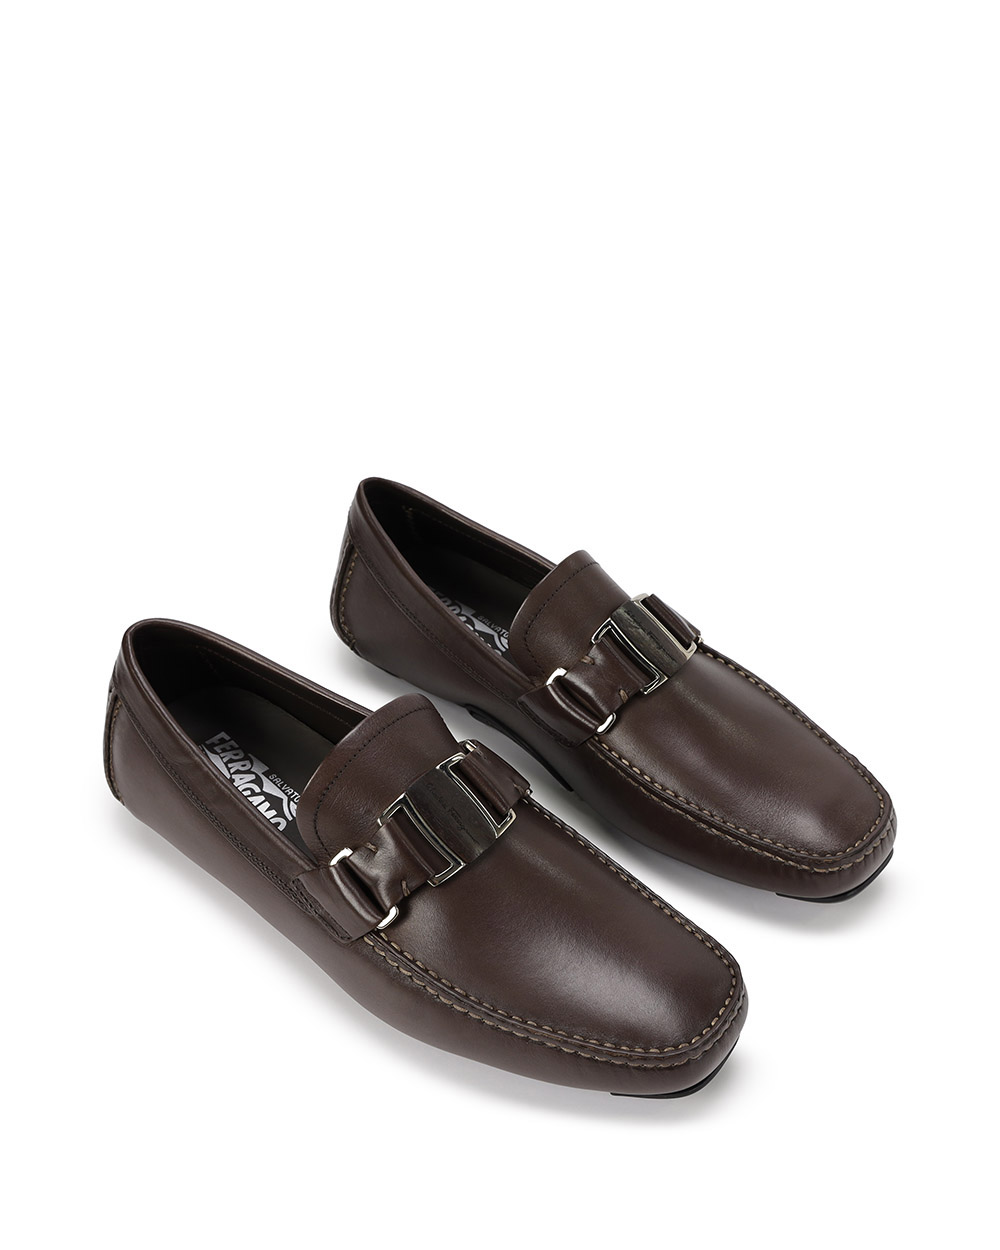 Sardegna Leather Loafers 1